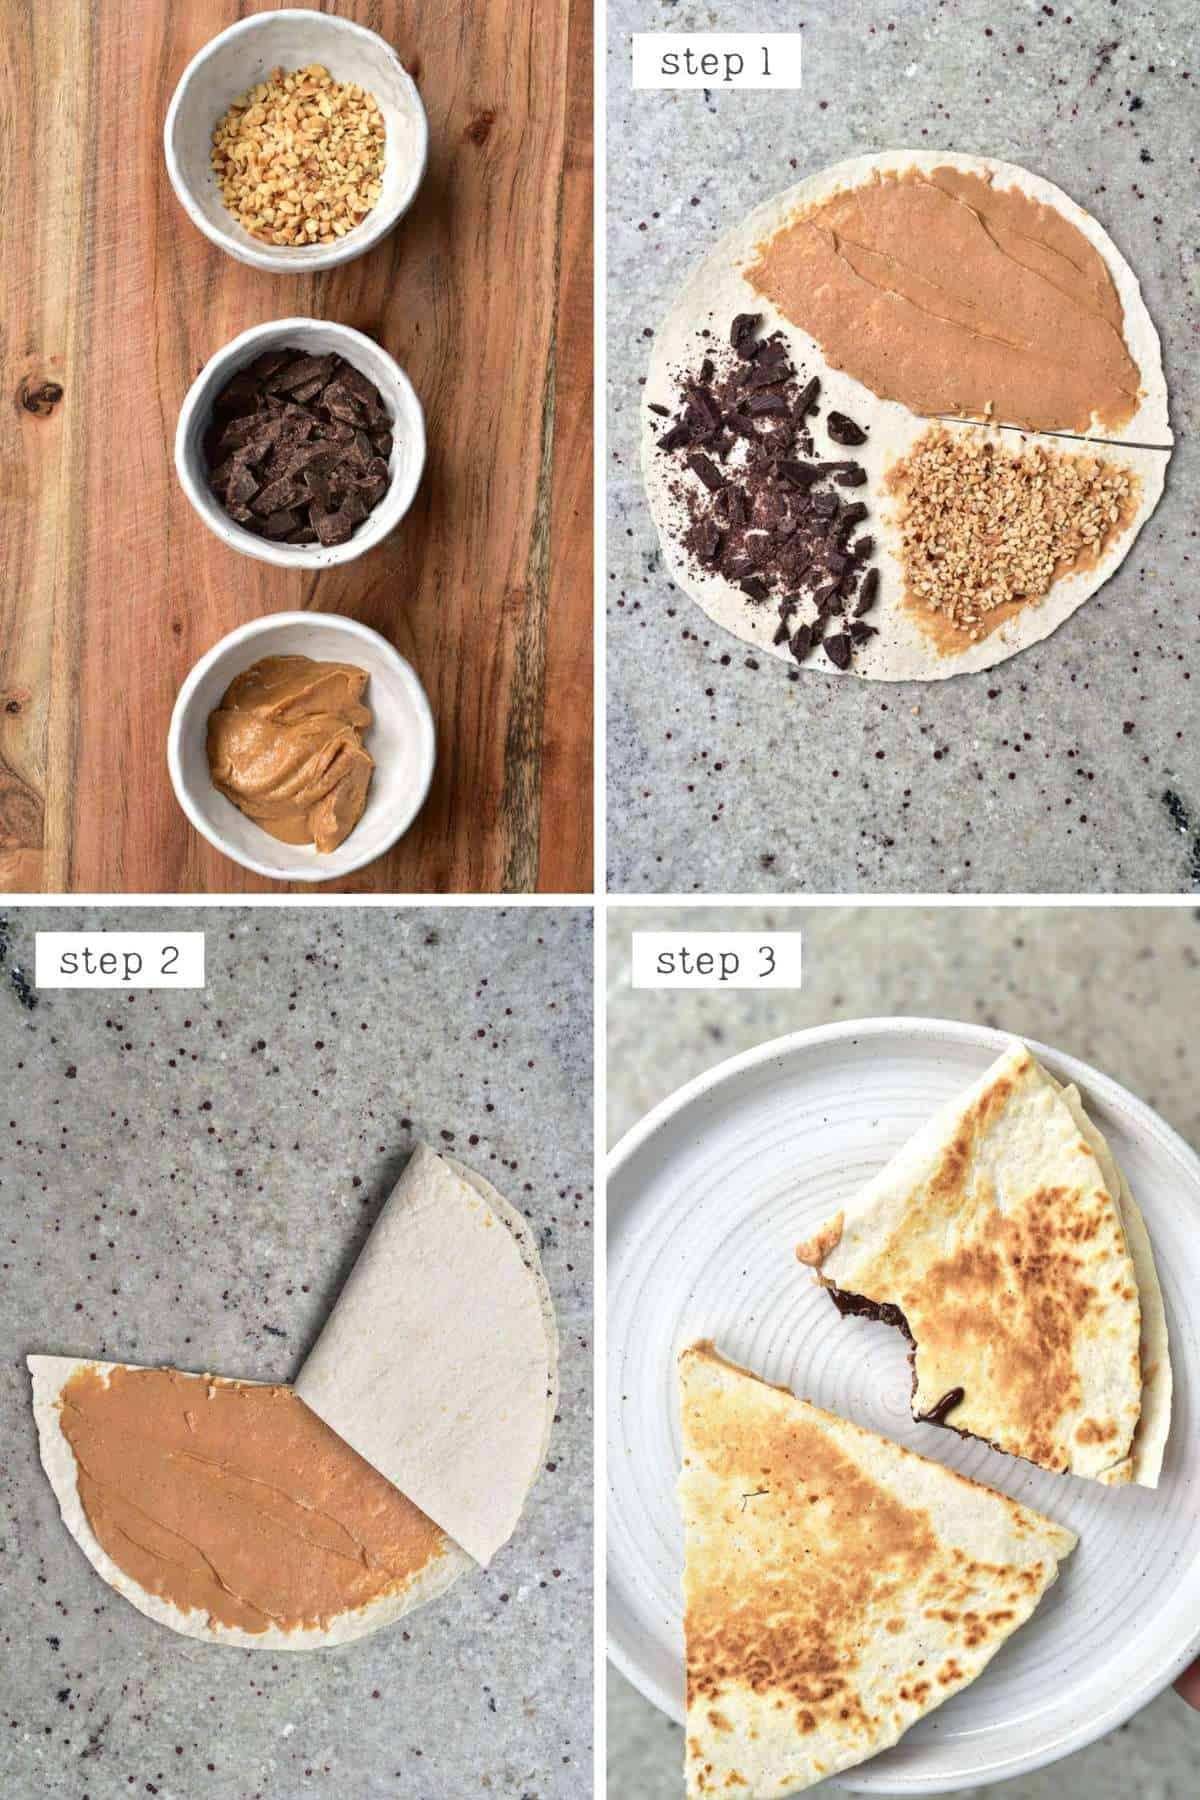 Steps for making PB and chocolate tortilla